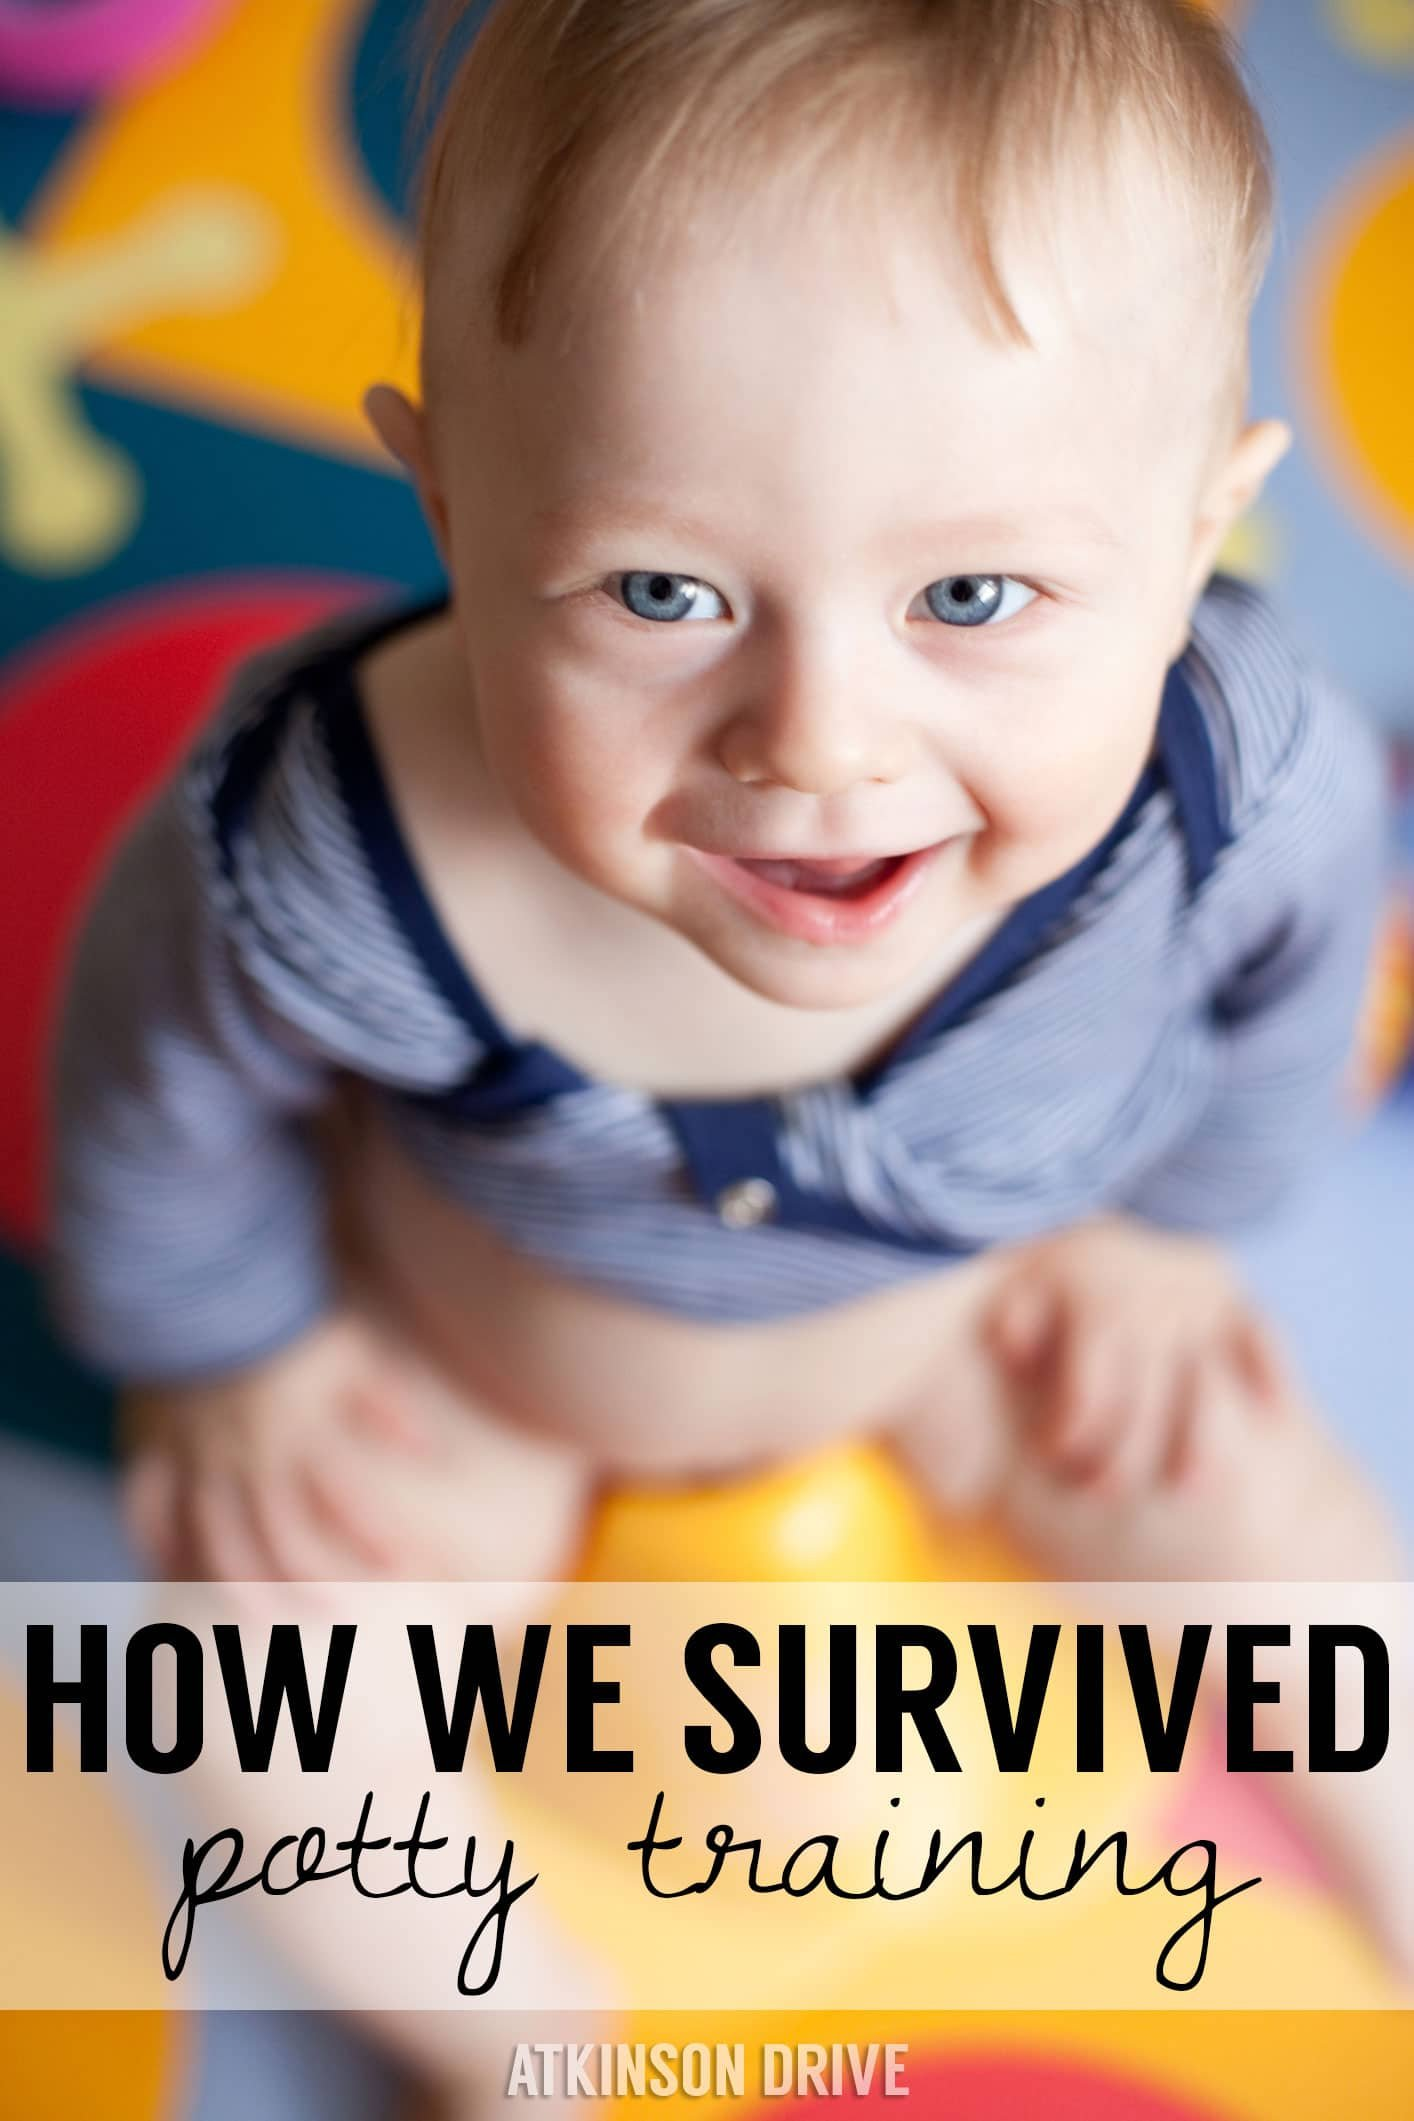 Simplify your life with these tips & tricks for how to survive that dreaded potty training time! /// by Atkinson Drive